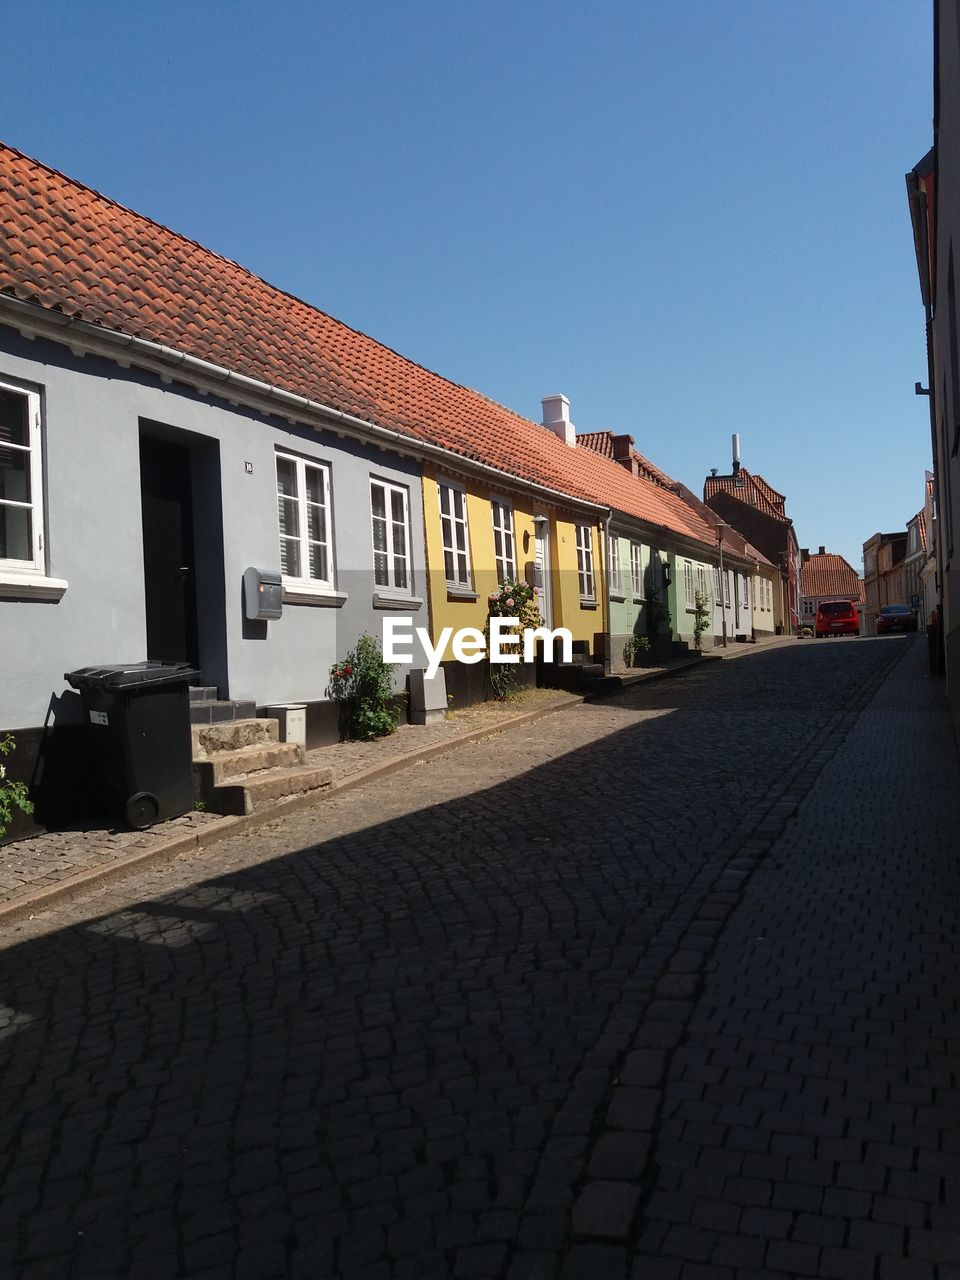 building exterior, built structure, architecture, building, sky, clear sky, city, street, sunlight, nature, copy space, cobblestone, house, residential district, day, no people, window, outdoors, roof, blue, paving stone, roof tile